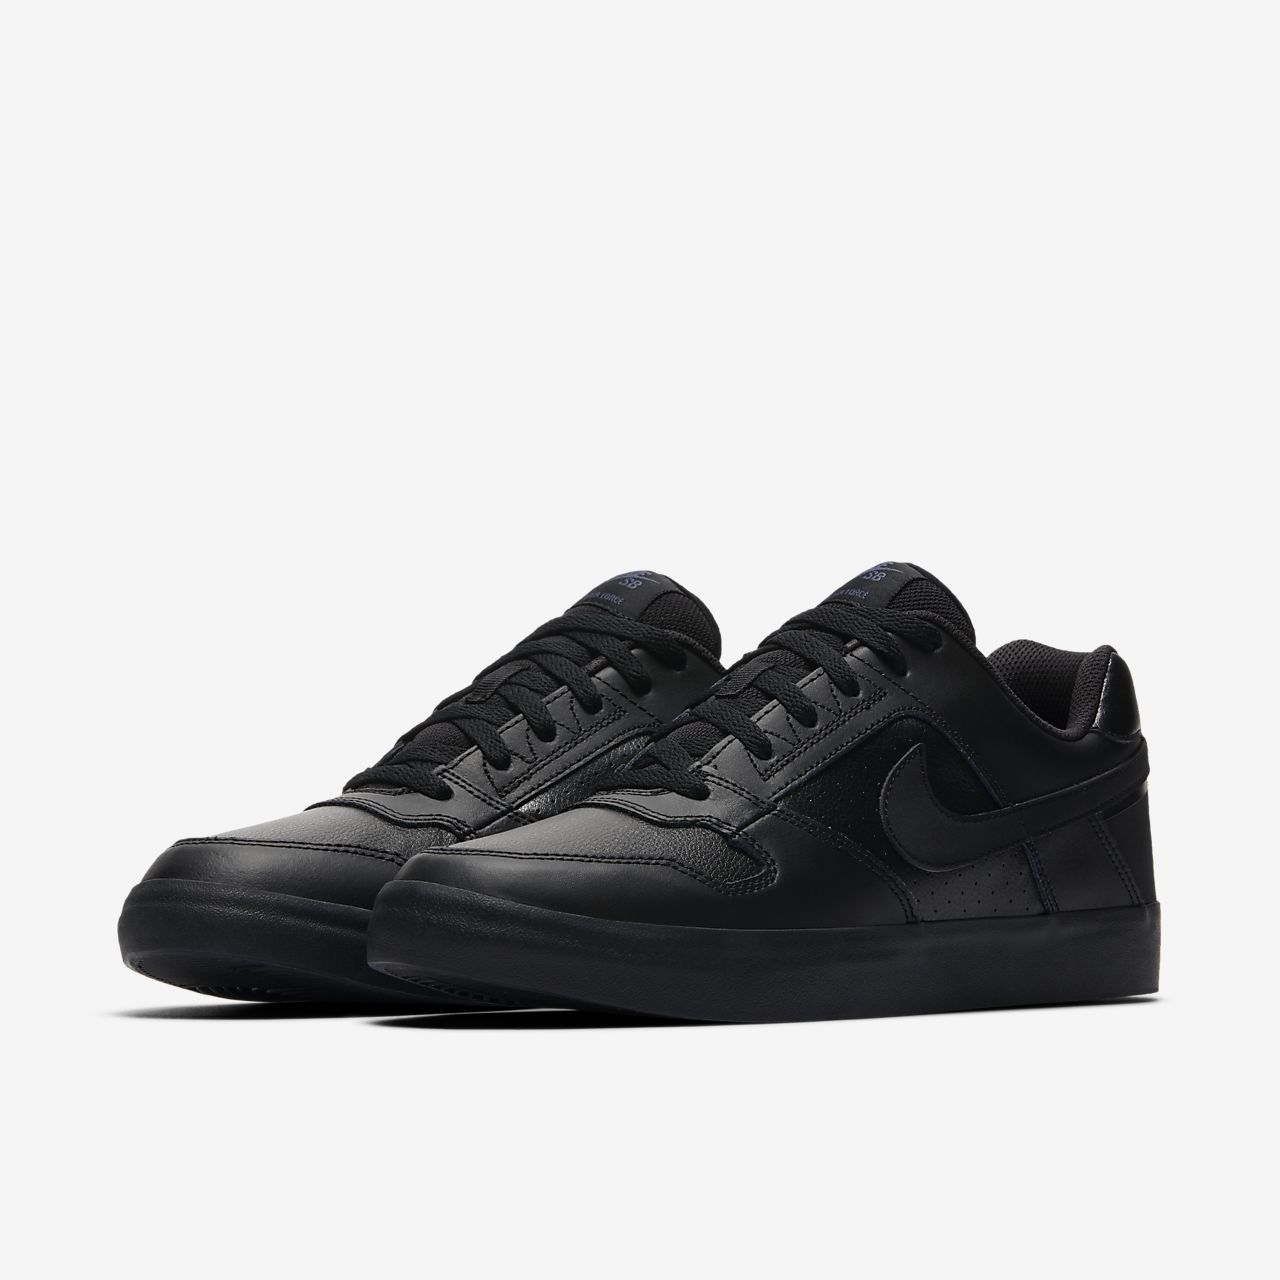 1c5855738ff Nike SB Delta Force Vulc Men's Skateboarding Shoe